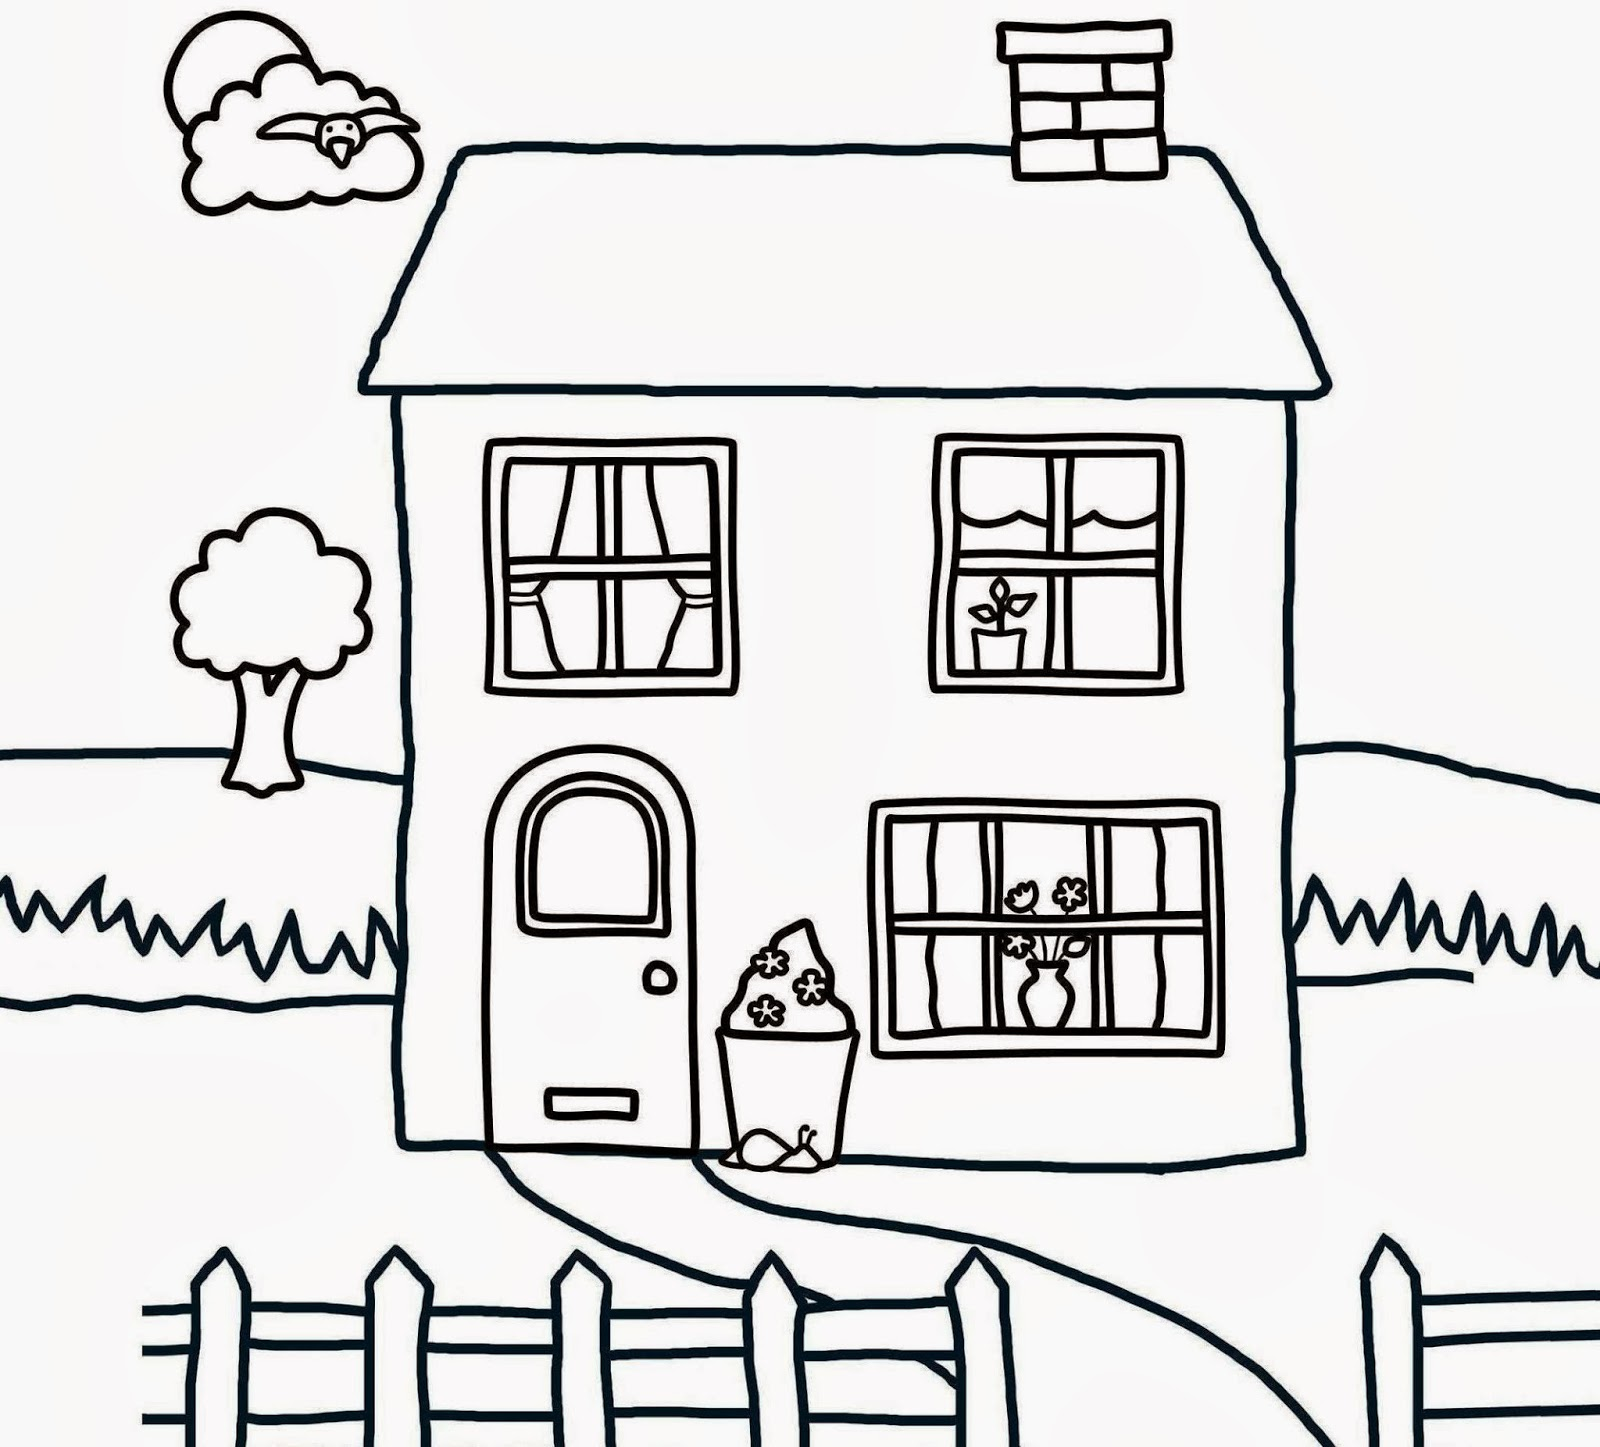 Childrens coloring house - Wallpaper Beautiful Kids House Coloring Colour Drawing Hd Wallpaper